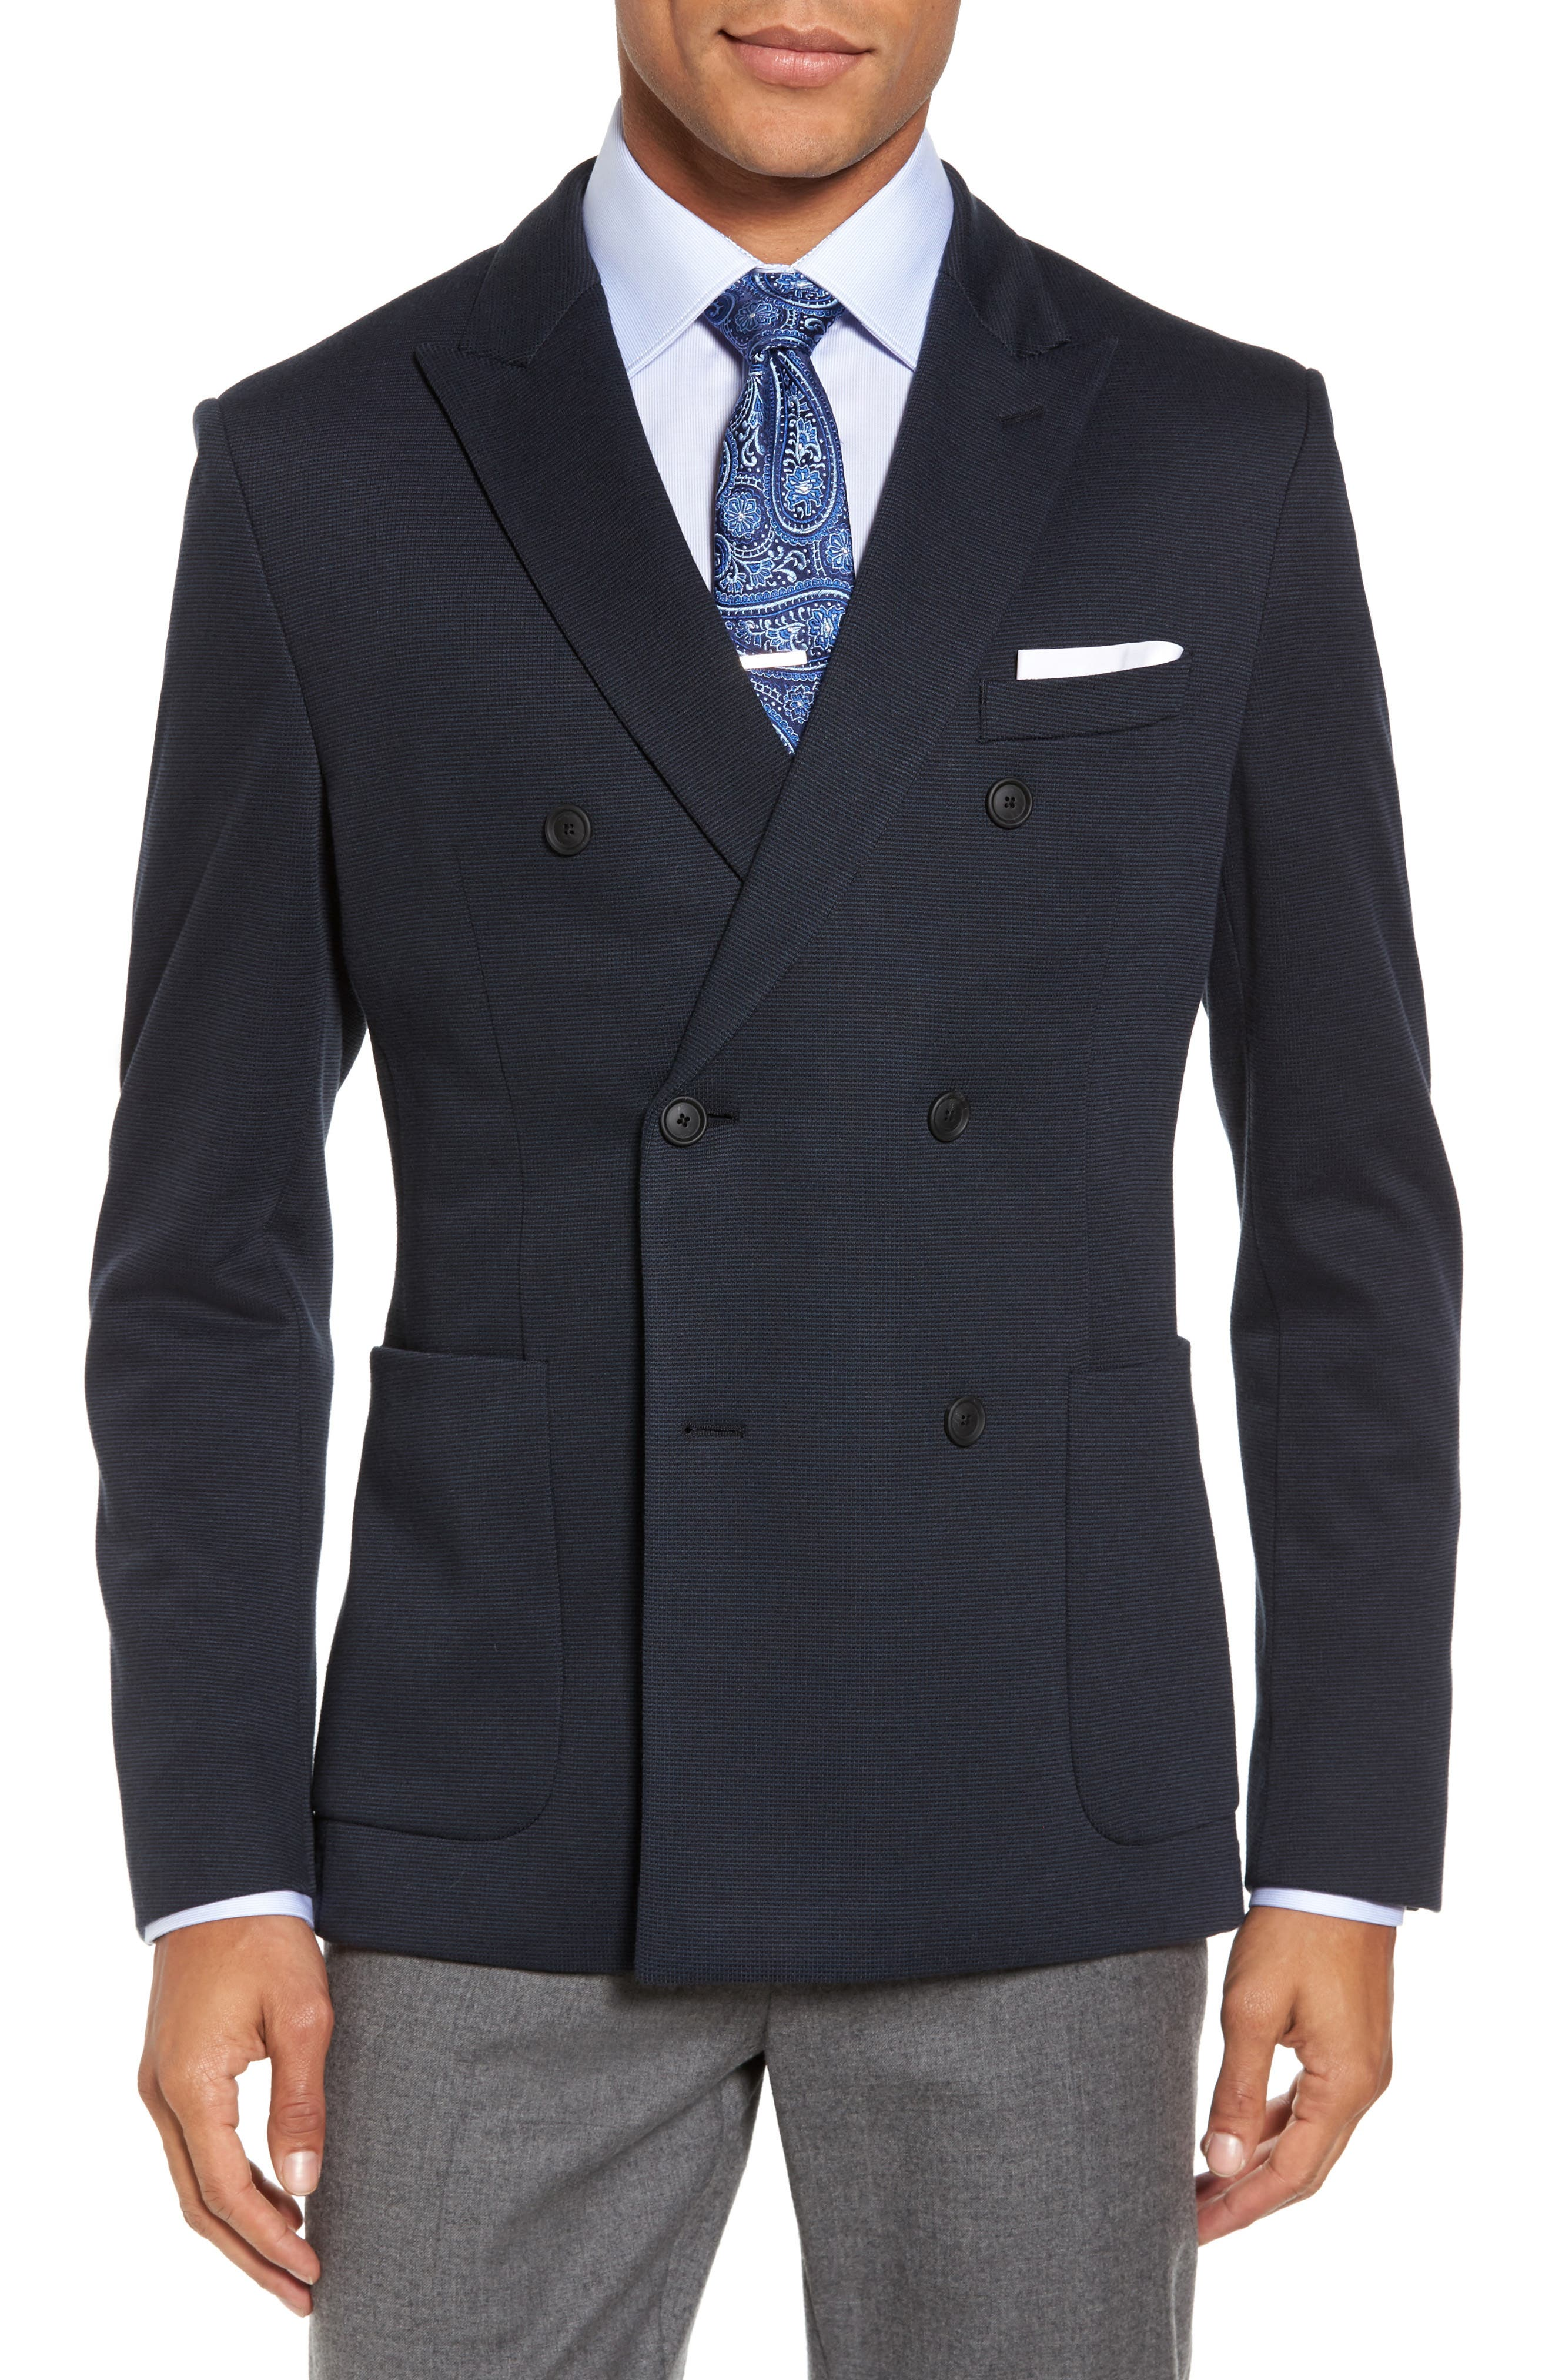 Nayler-J Trim Fit Double-Breasted Blazer,                         Main,                         color, Navy